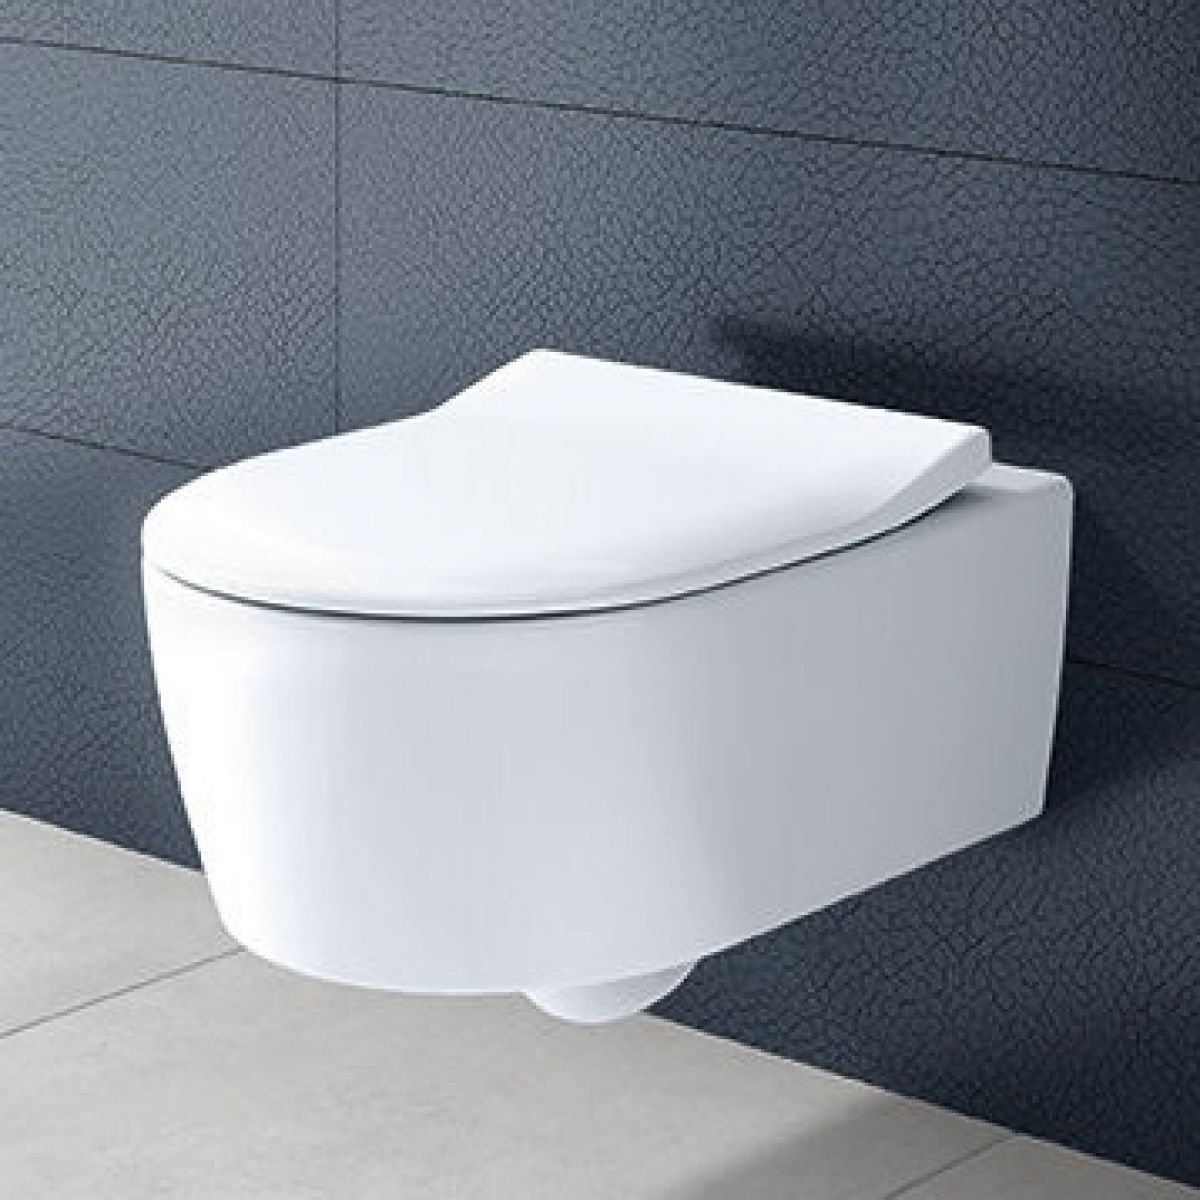 villeroy boch avento wall hung rimless toilet. Black Bedroom Furniture Sets. Home Design Ideas